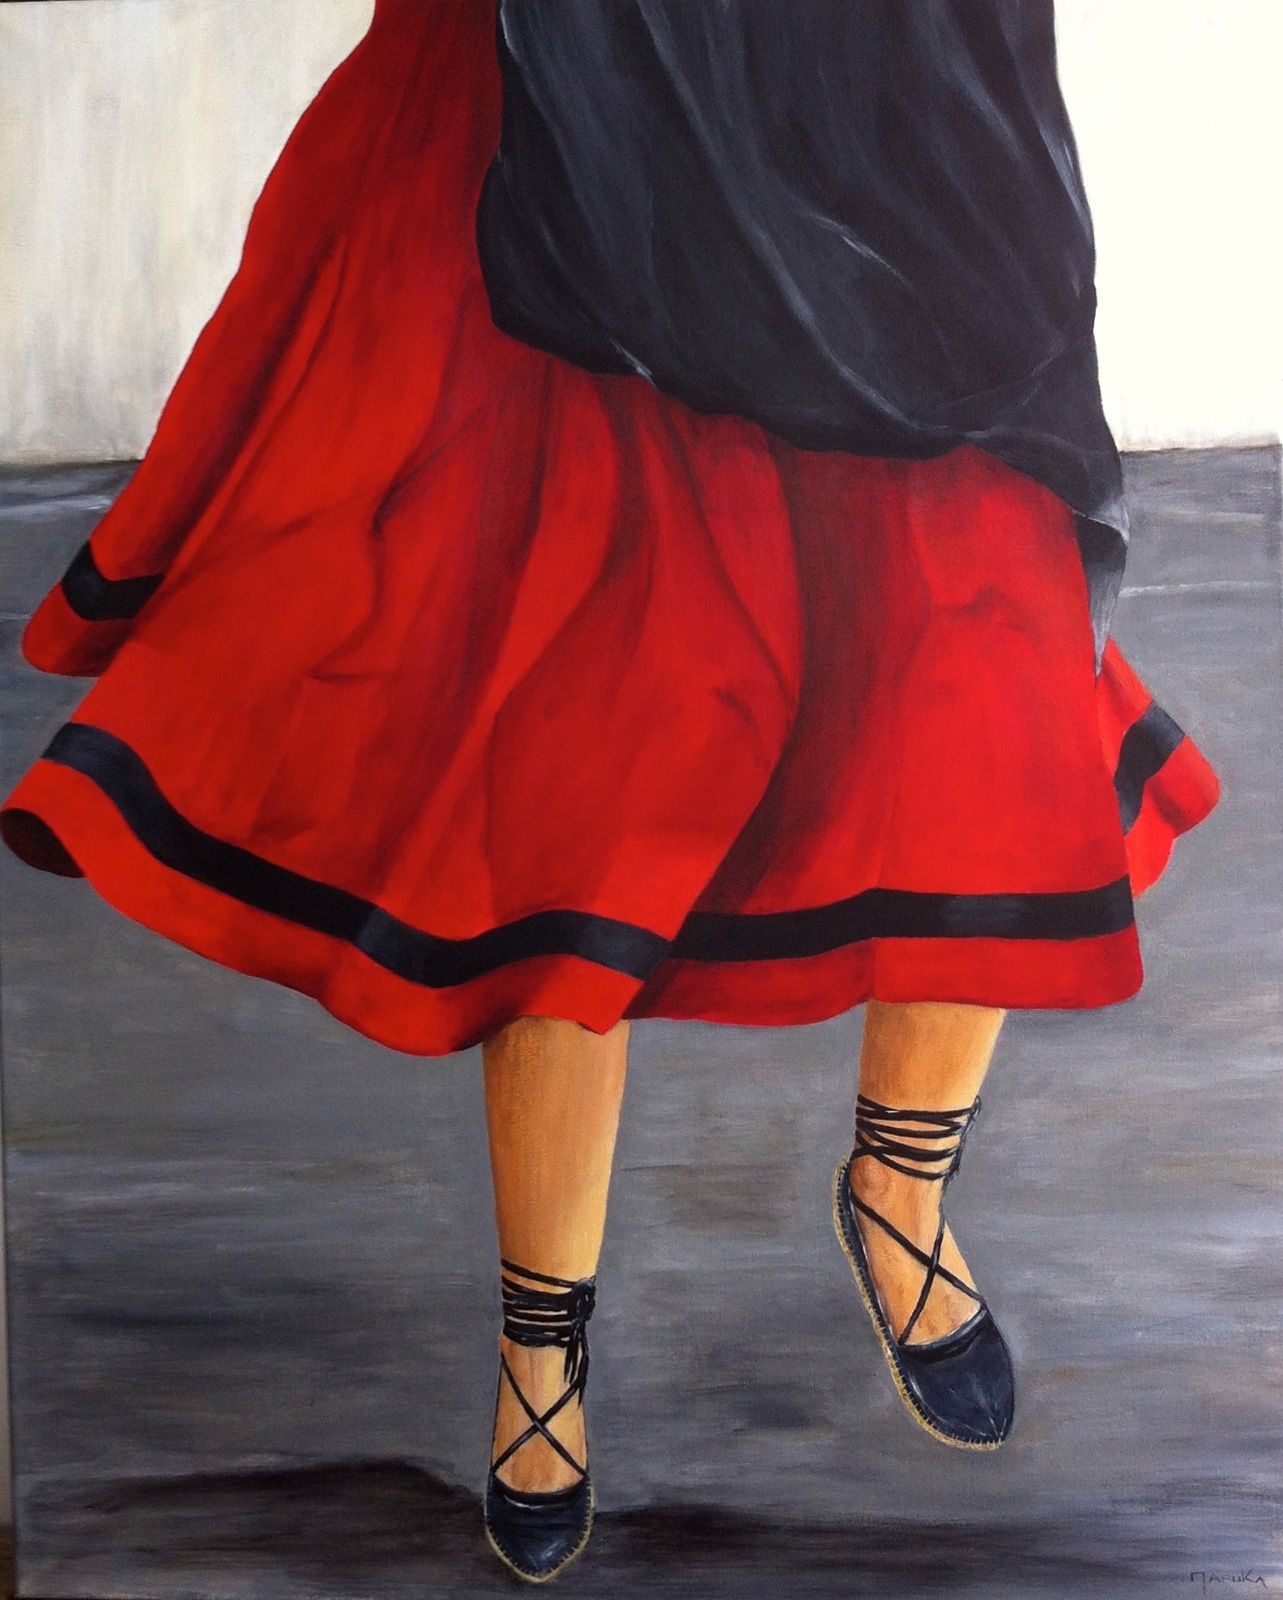 danseuse basque